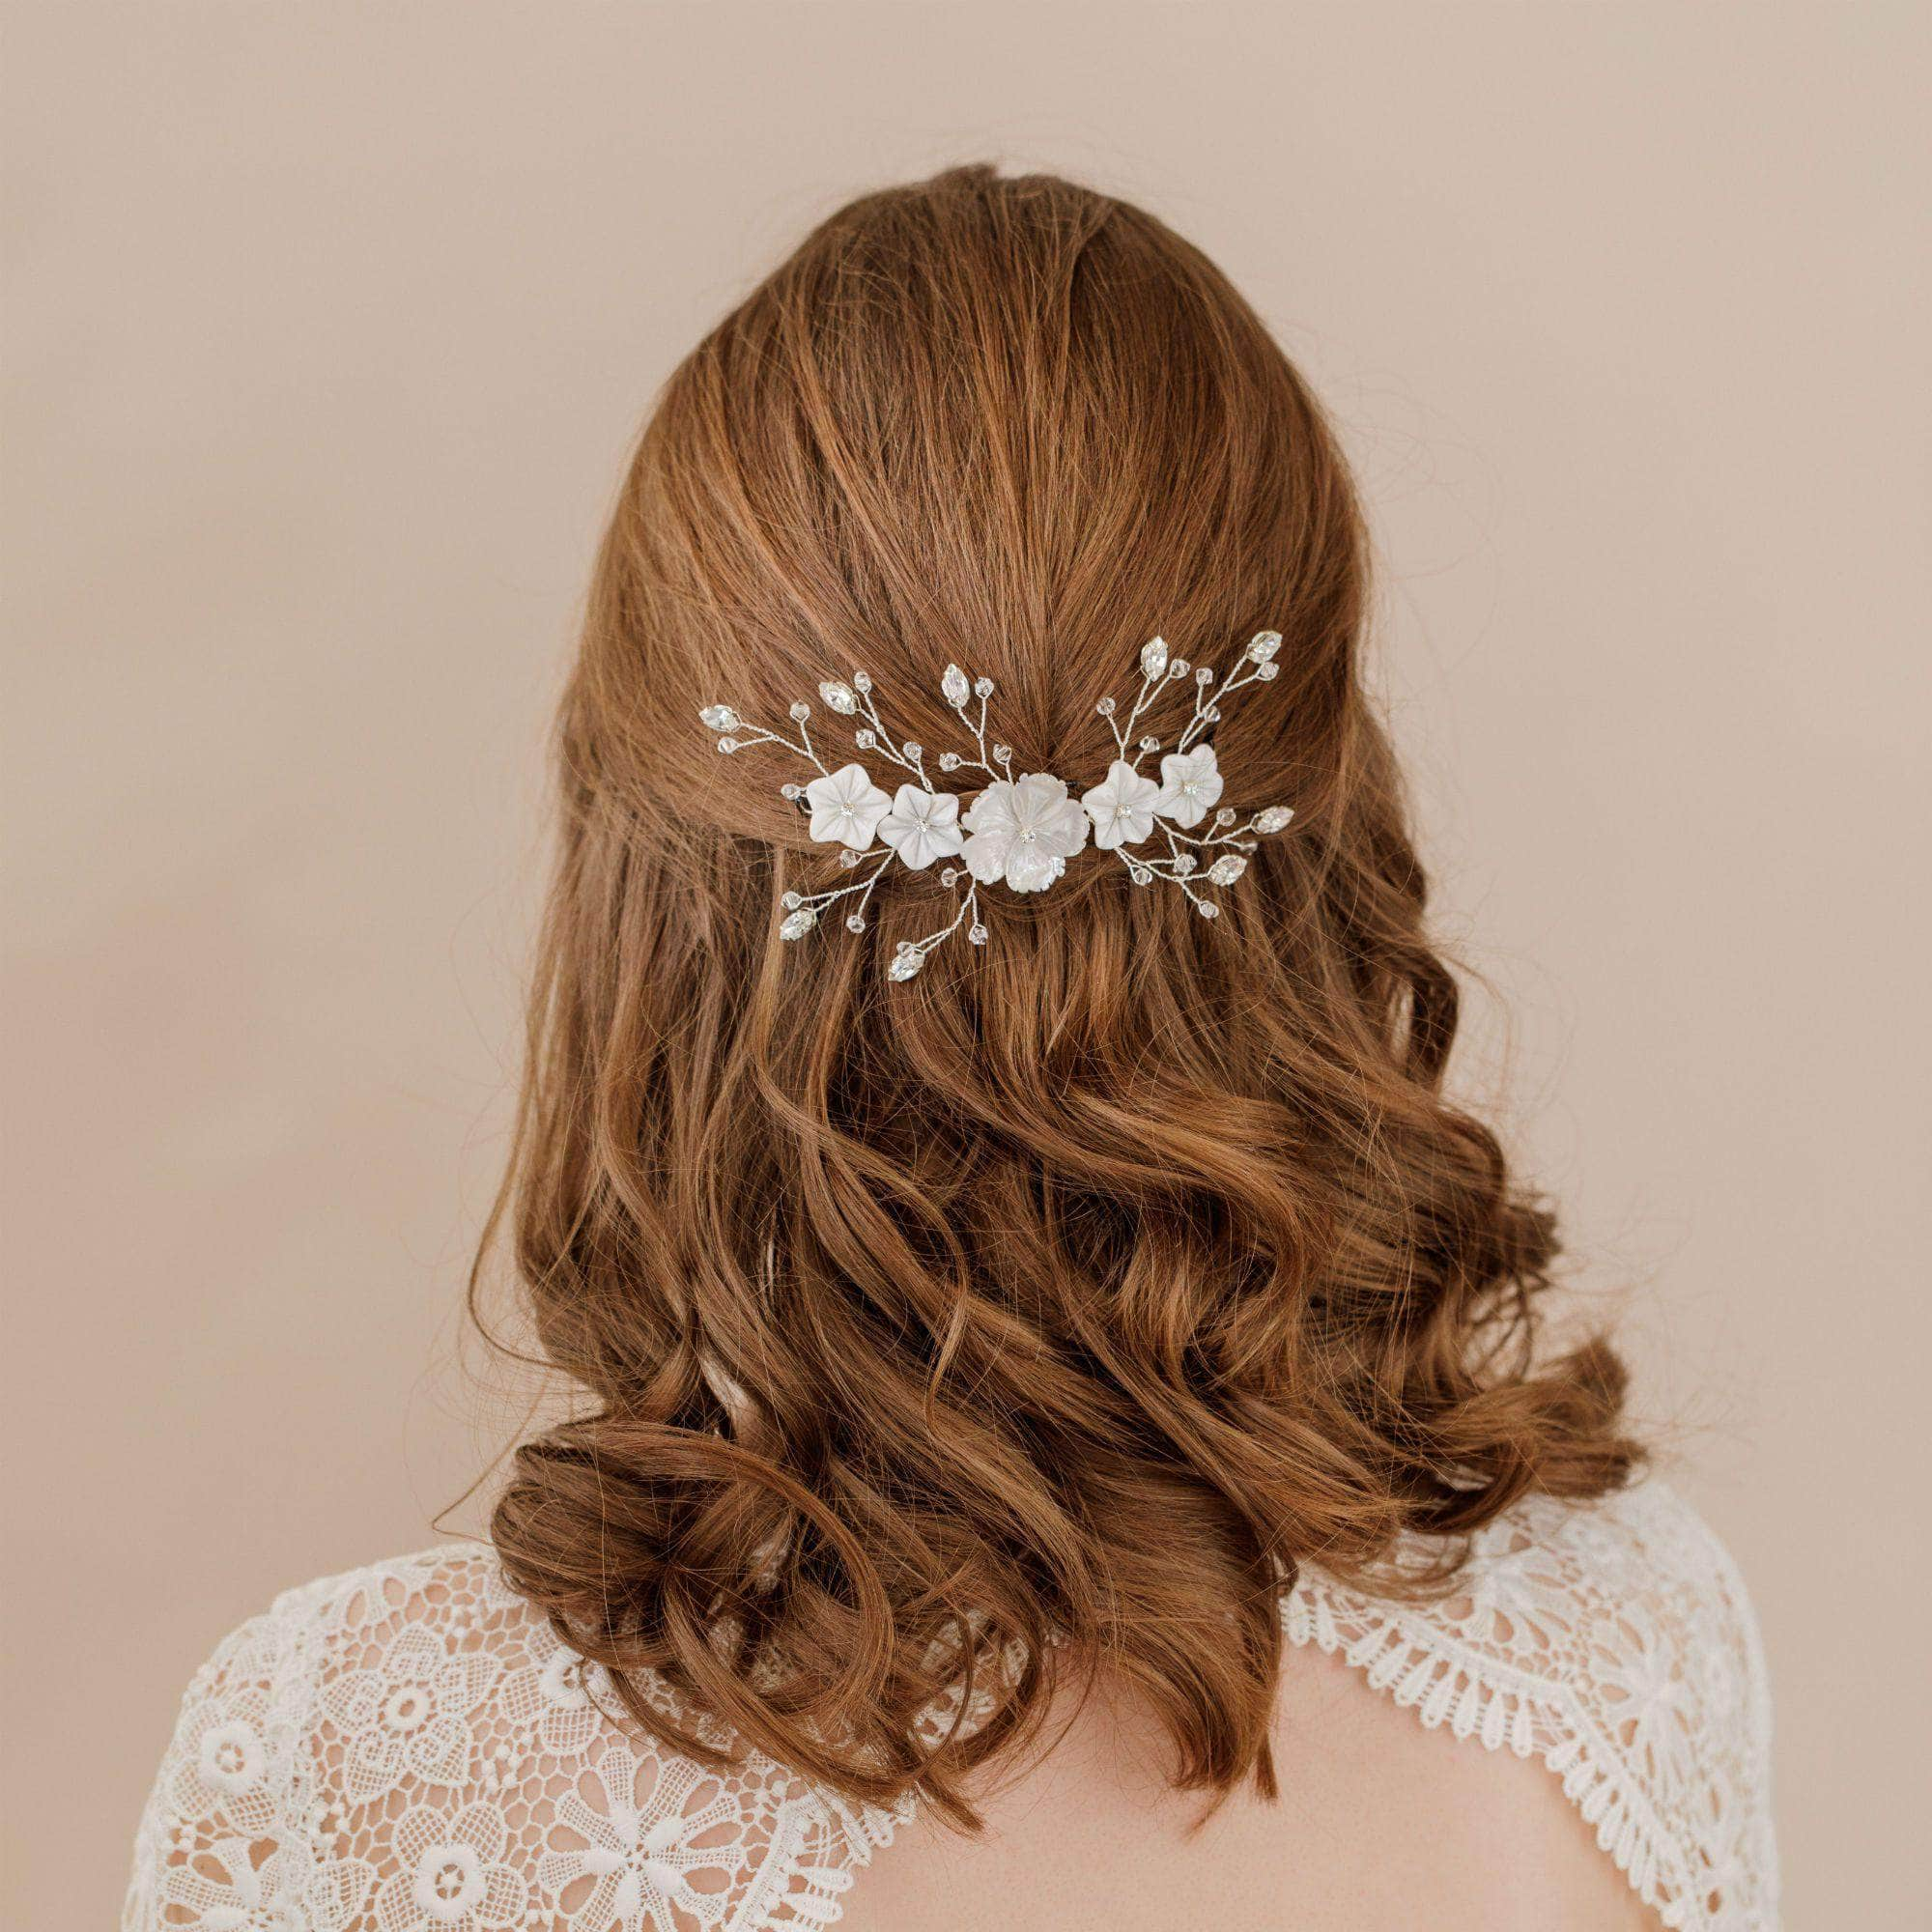 Wedding Hairvine Silver floral hair centrepiece - 'Jaime'